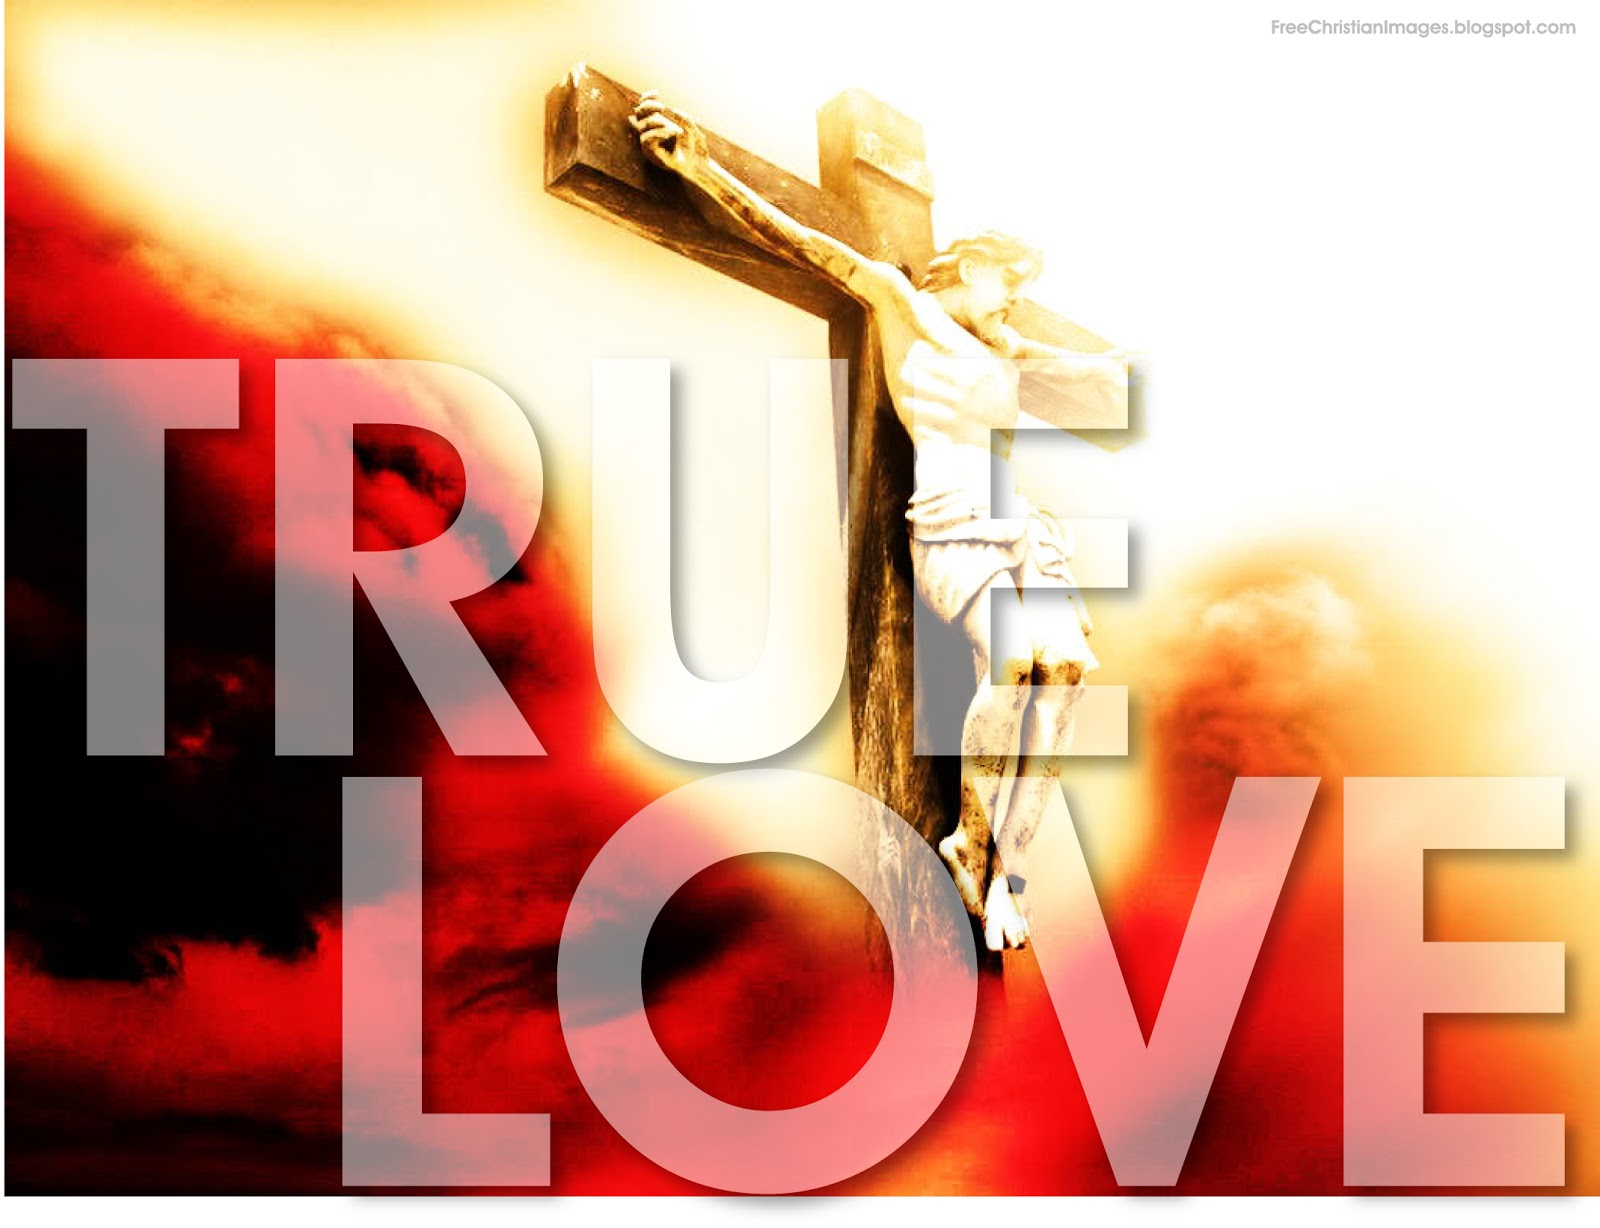 true love jesus christ crucified free christian images